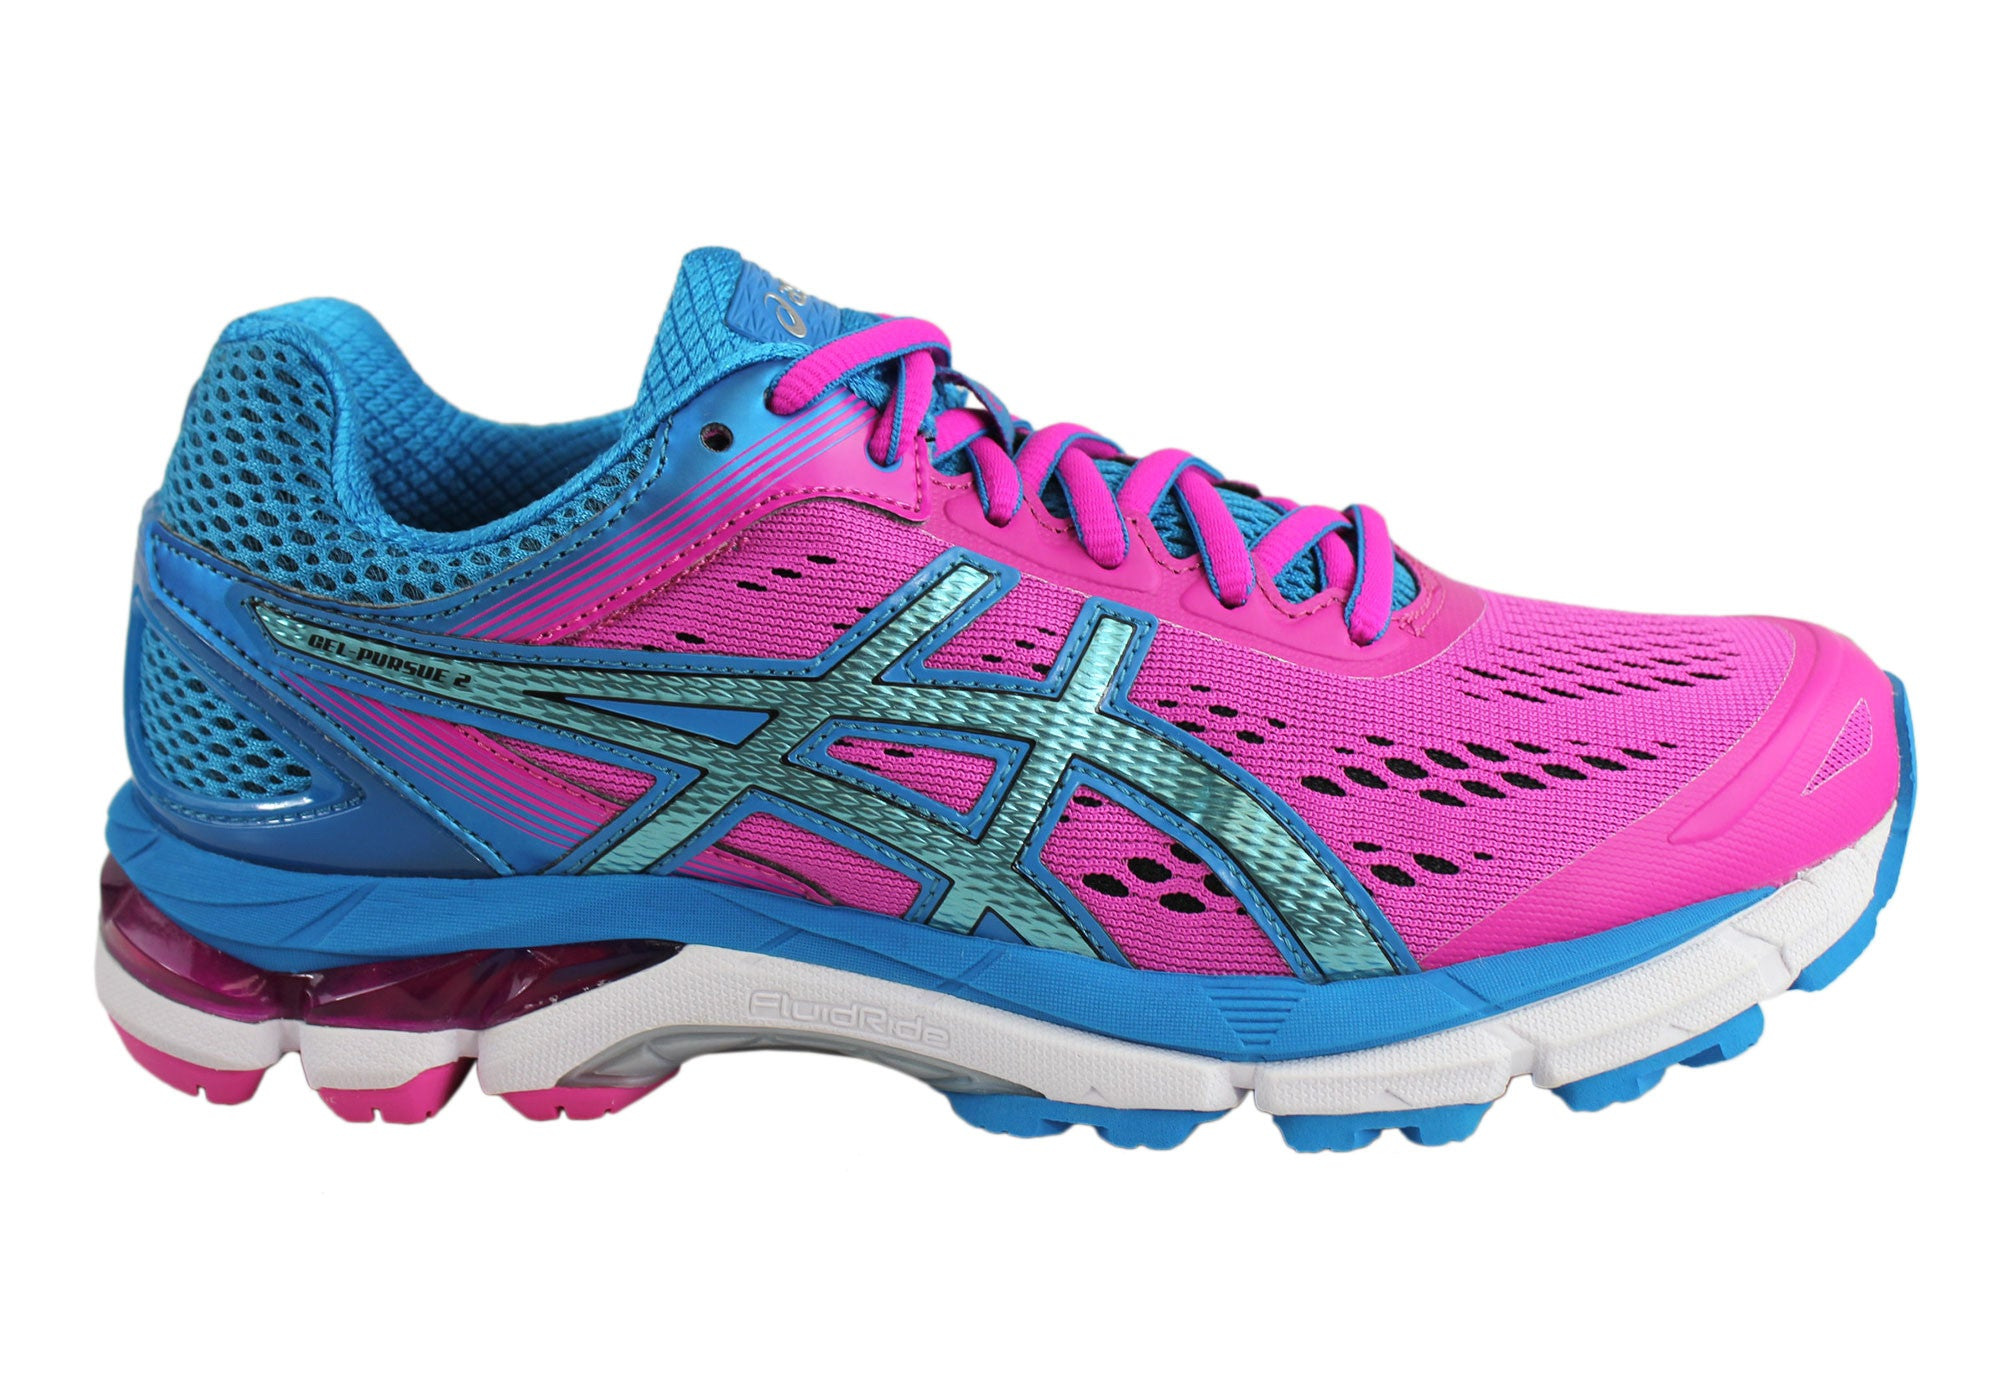 NEW ASICS WOMENS GEL-PURSUE 2 (D) WIDTH WIDE FITTING RUNNING SHOES ... ebb24ad0af7d